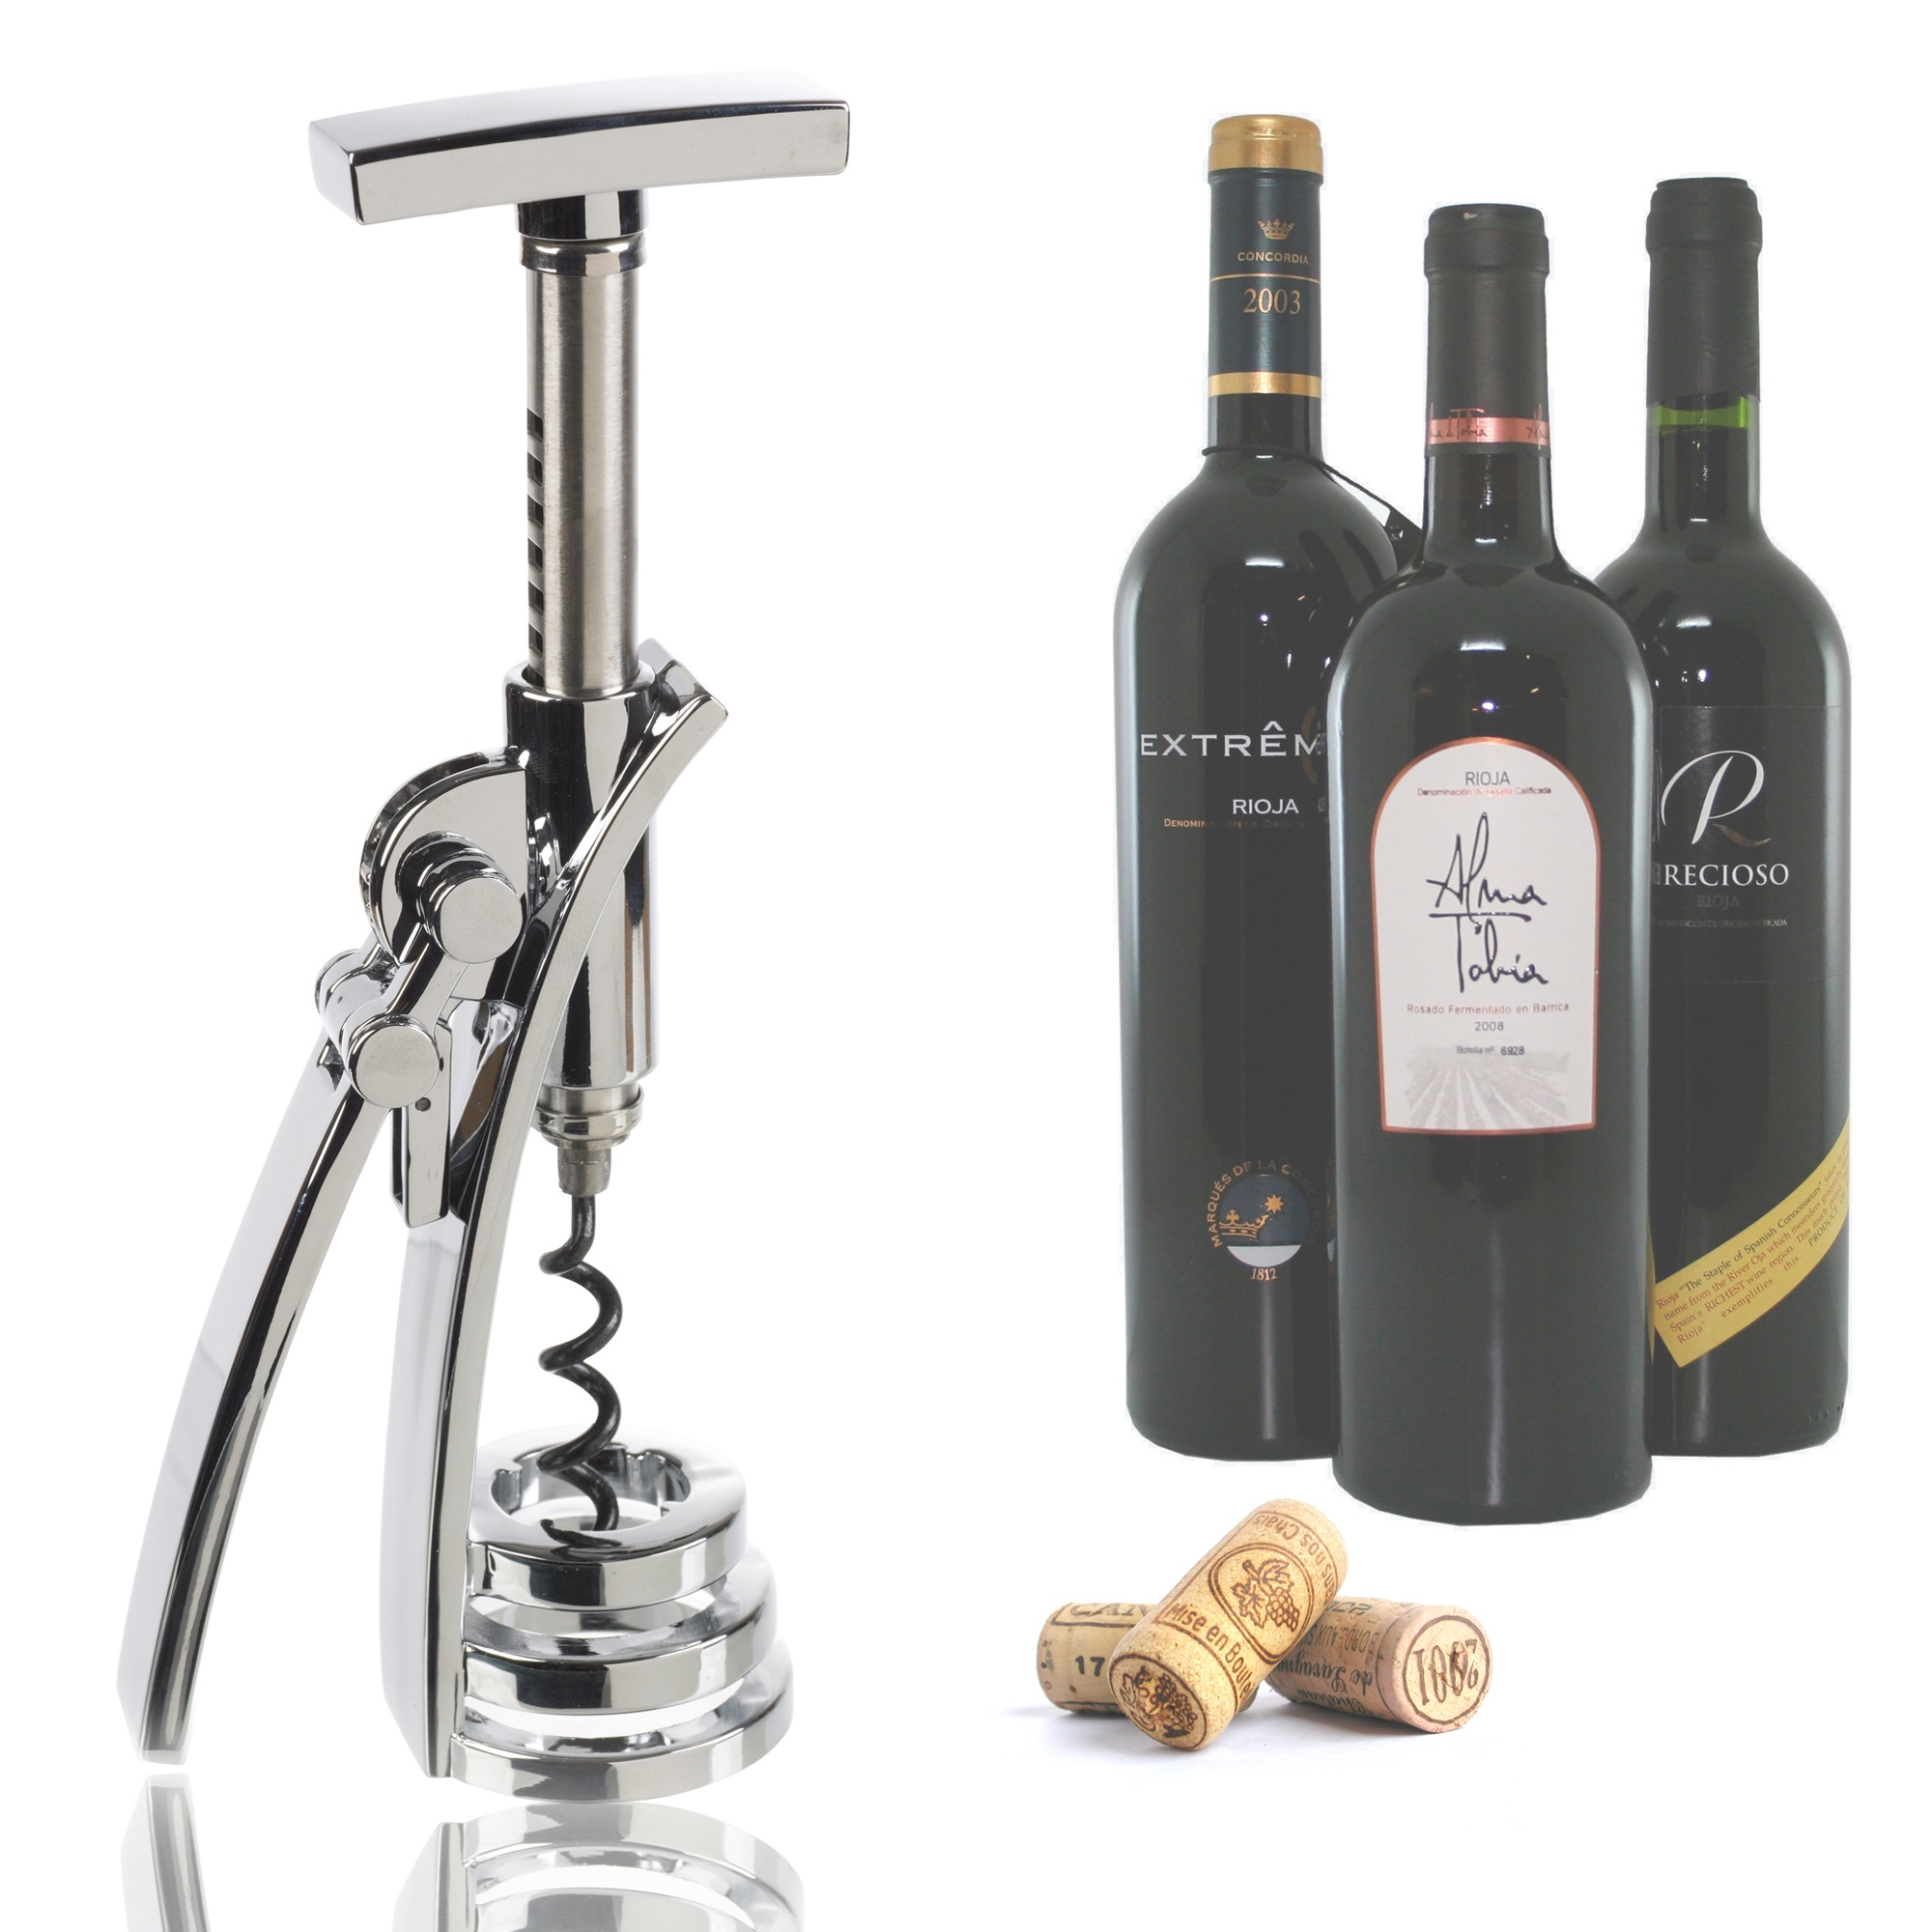 invotis chrome wing corkscrew wine bottle opener winged lever gear mechanism ebay. Black Bedroom Furniture Sets. Home Design Ideas